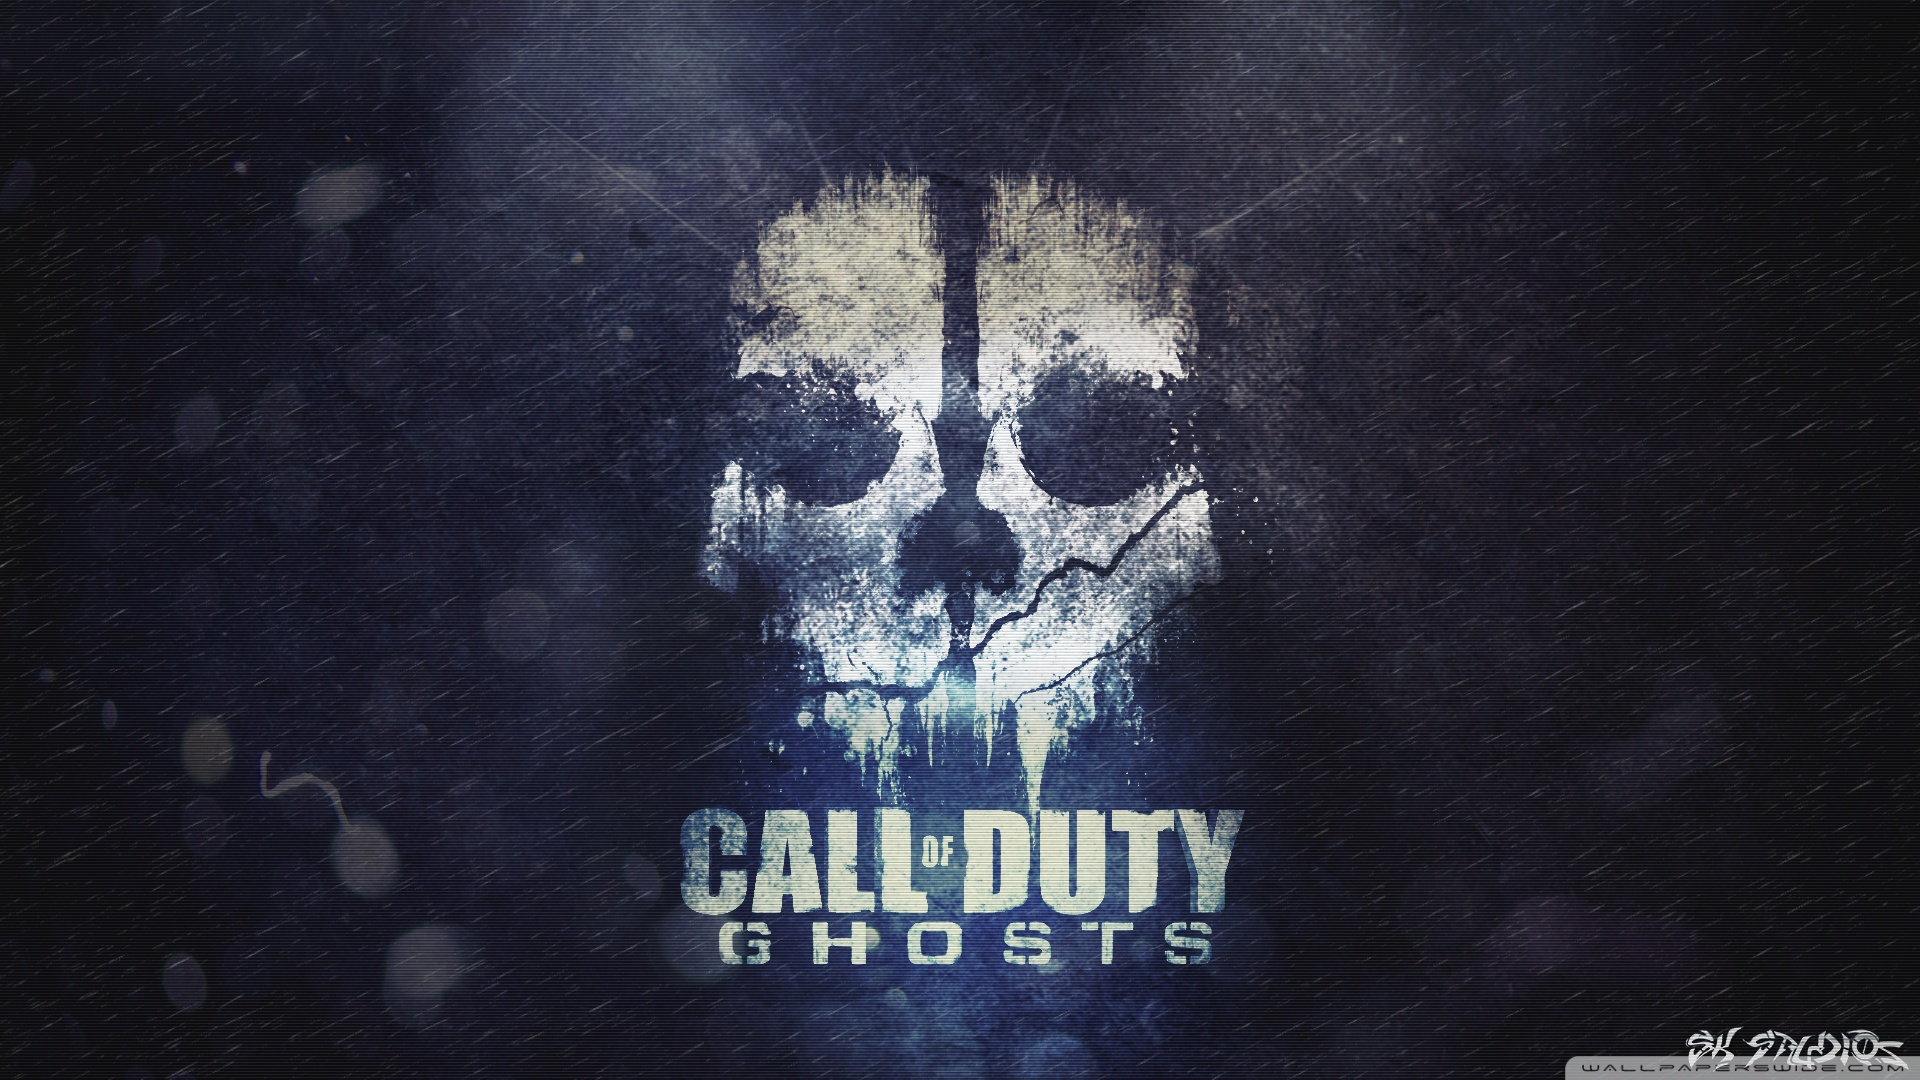 Call of duty ghosts wallpaper 1920x1080 52222 call of duty ghosts wallpaper voltagebd Choice Image